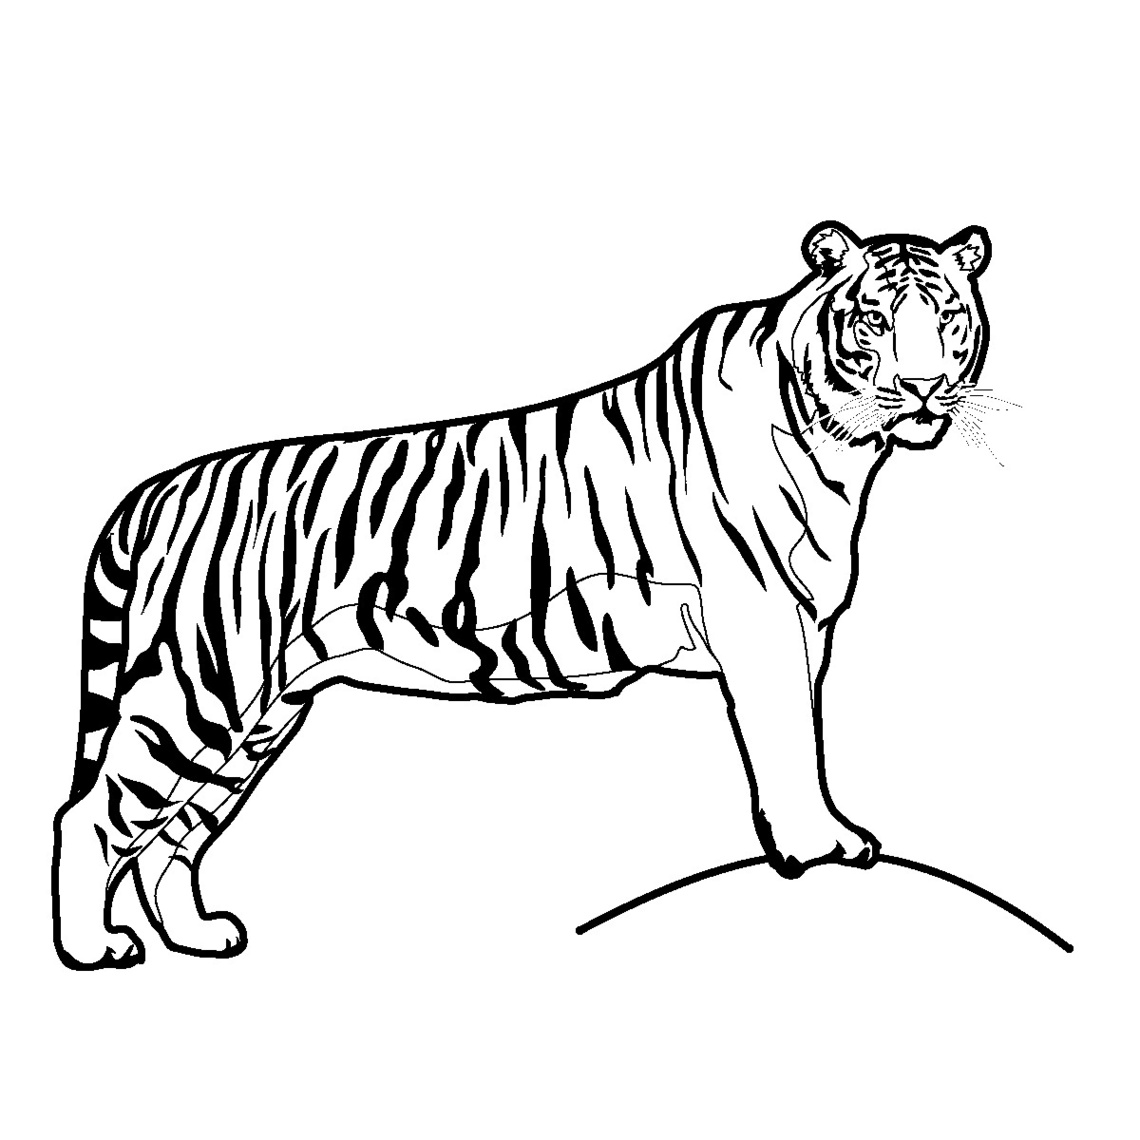 Baby bengal tiger clipart black and white jpg free download Black And White Tiger Drawing | Free download best Black And White ... jpg free download